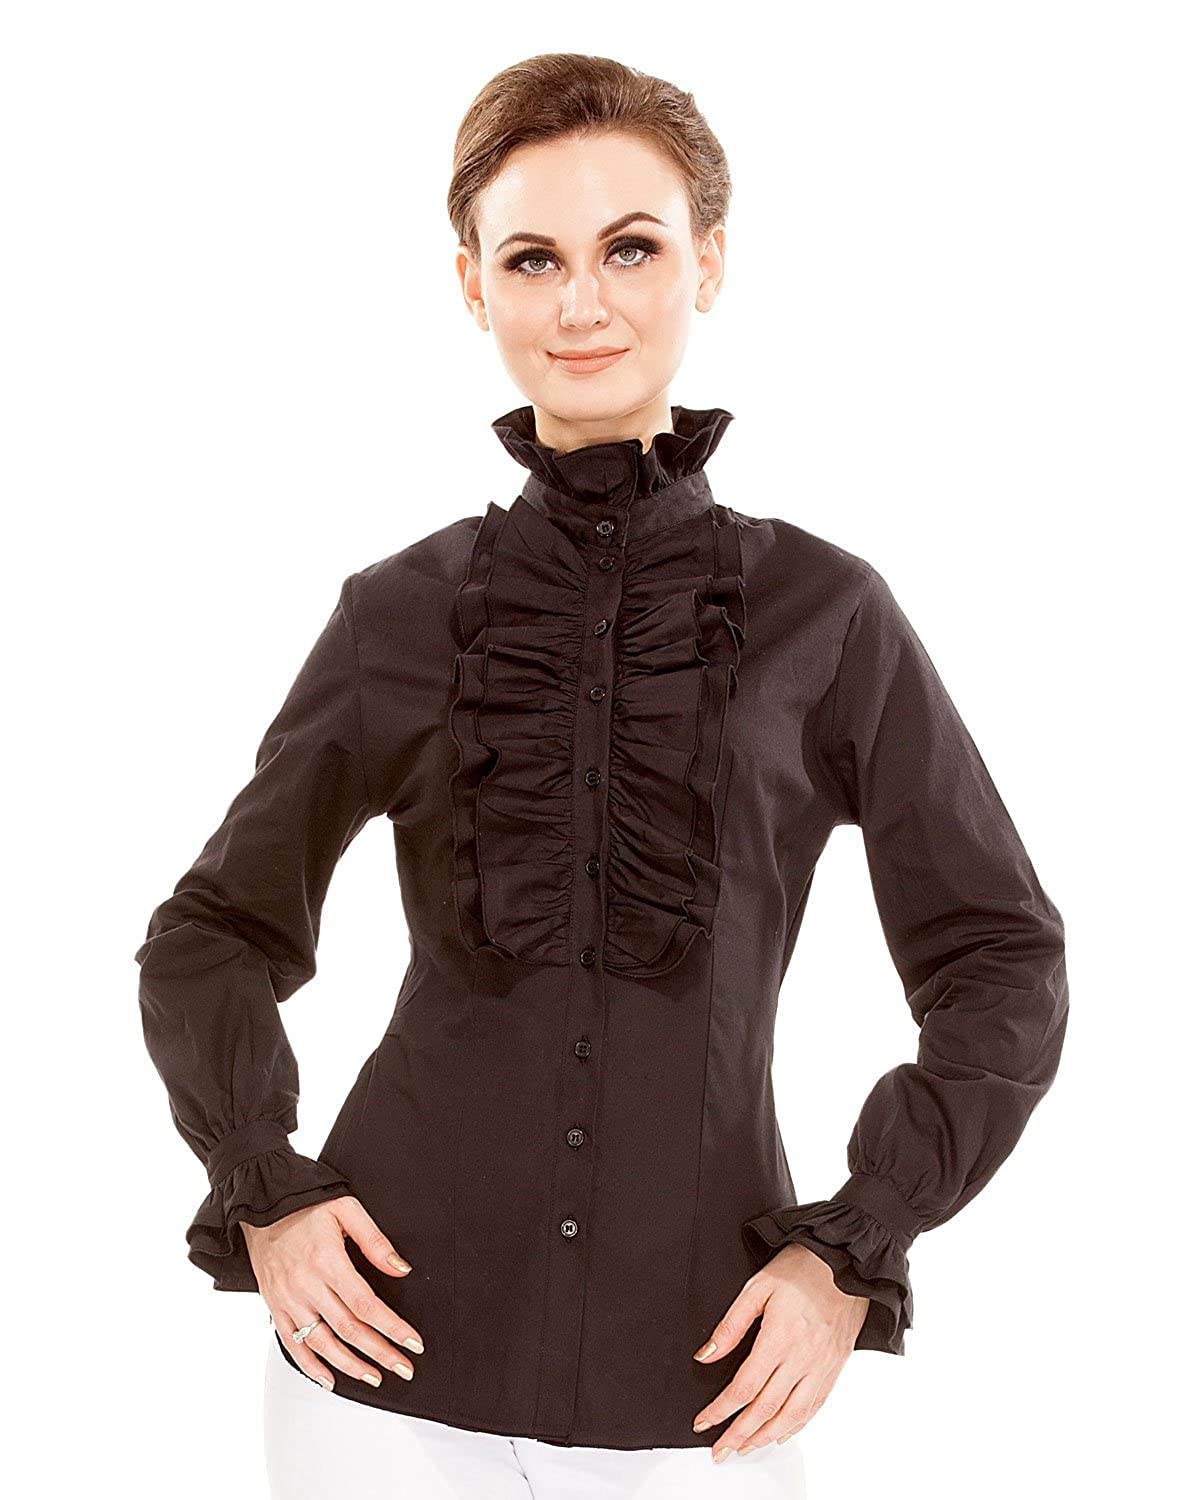 Steampunk Tops | Blouses, Shirts ThePirateDressing Steampunk Gothic Victorian Cosplay Costume Womens Stand-up Collar 100% Cotton Blouse Shirt $41.95 AT vintagedancer.com